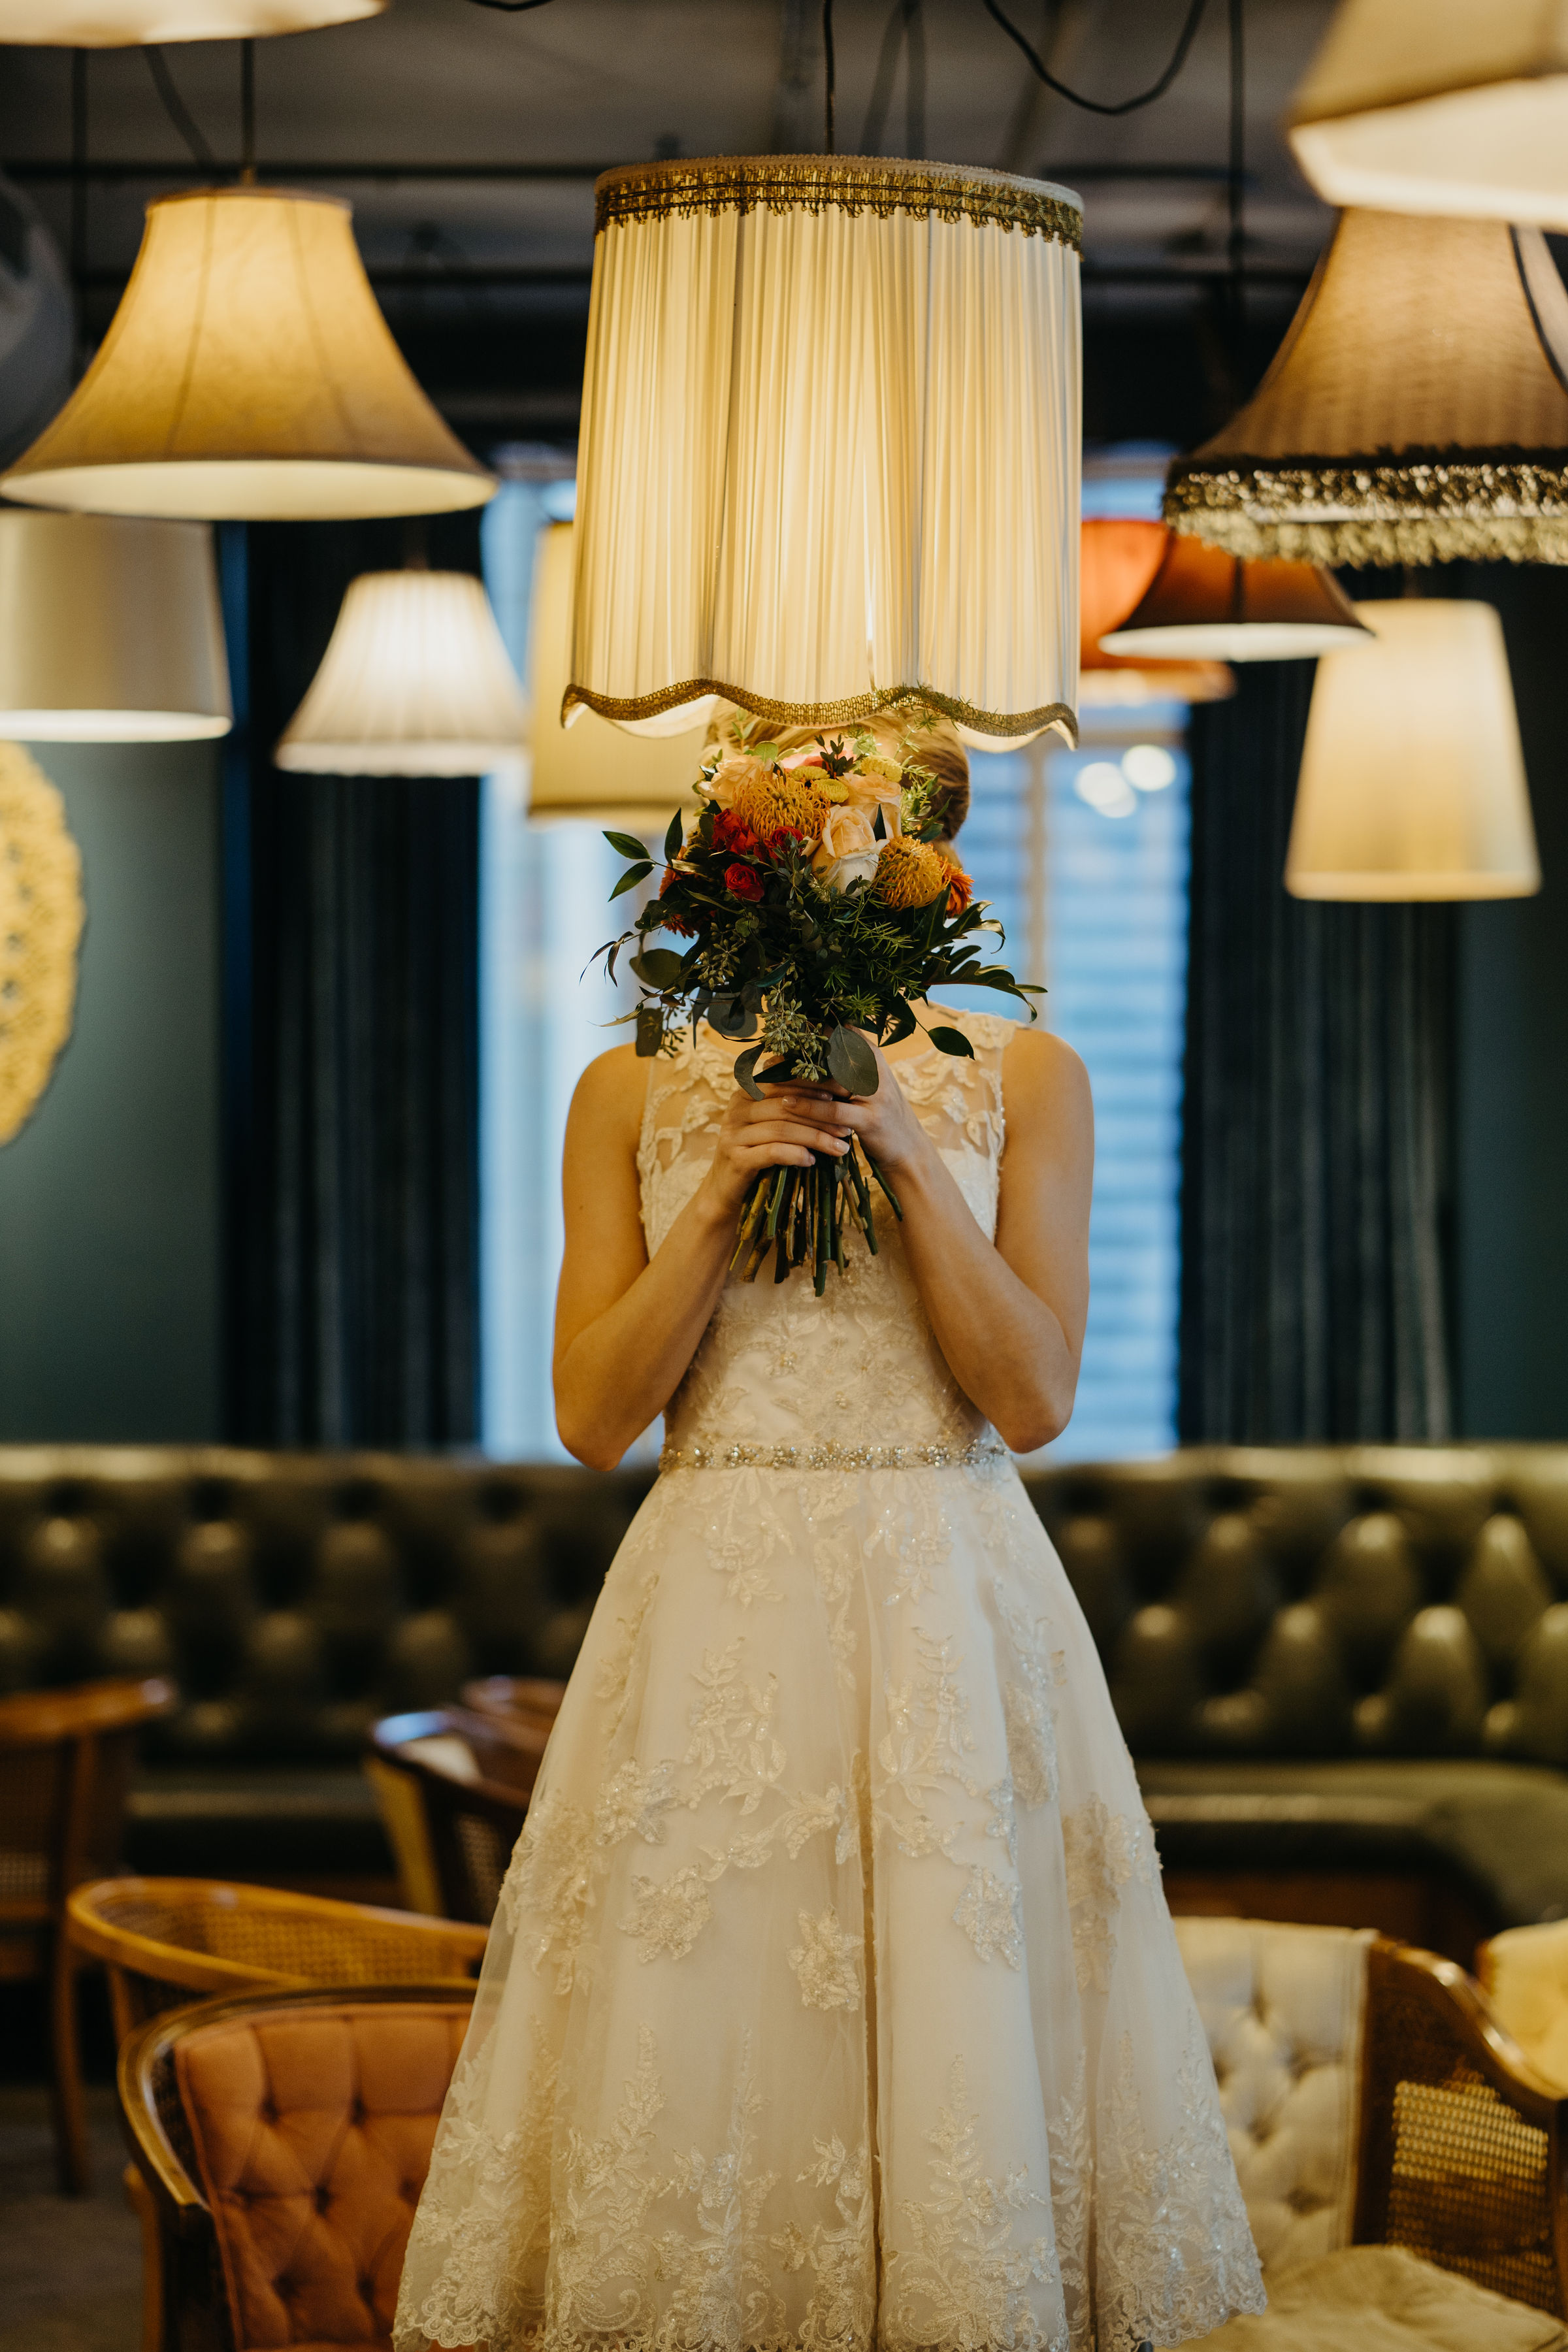 Bride wears a lace and satin retro-style wedding dress and it has a gold thin band at waist, bride stands under a vintage lampshade at a fancy bar and holds up her flowers from Lavender Blue